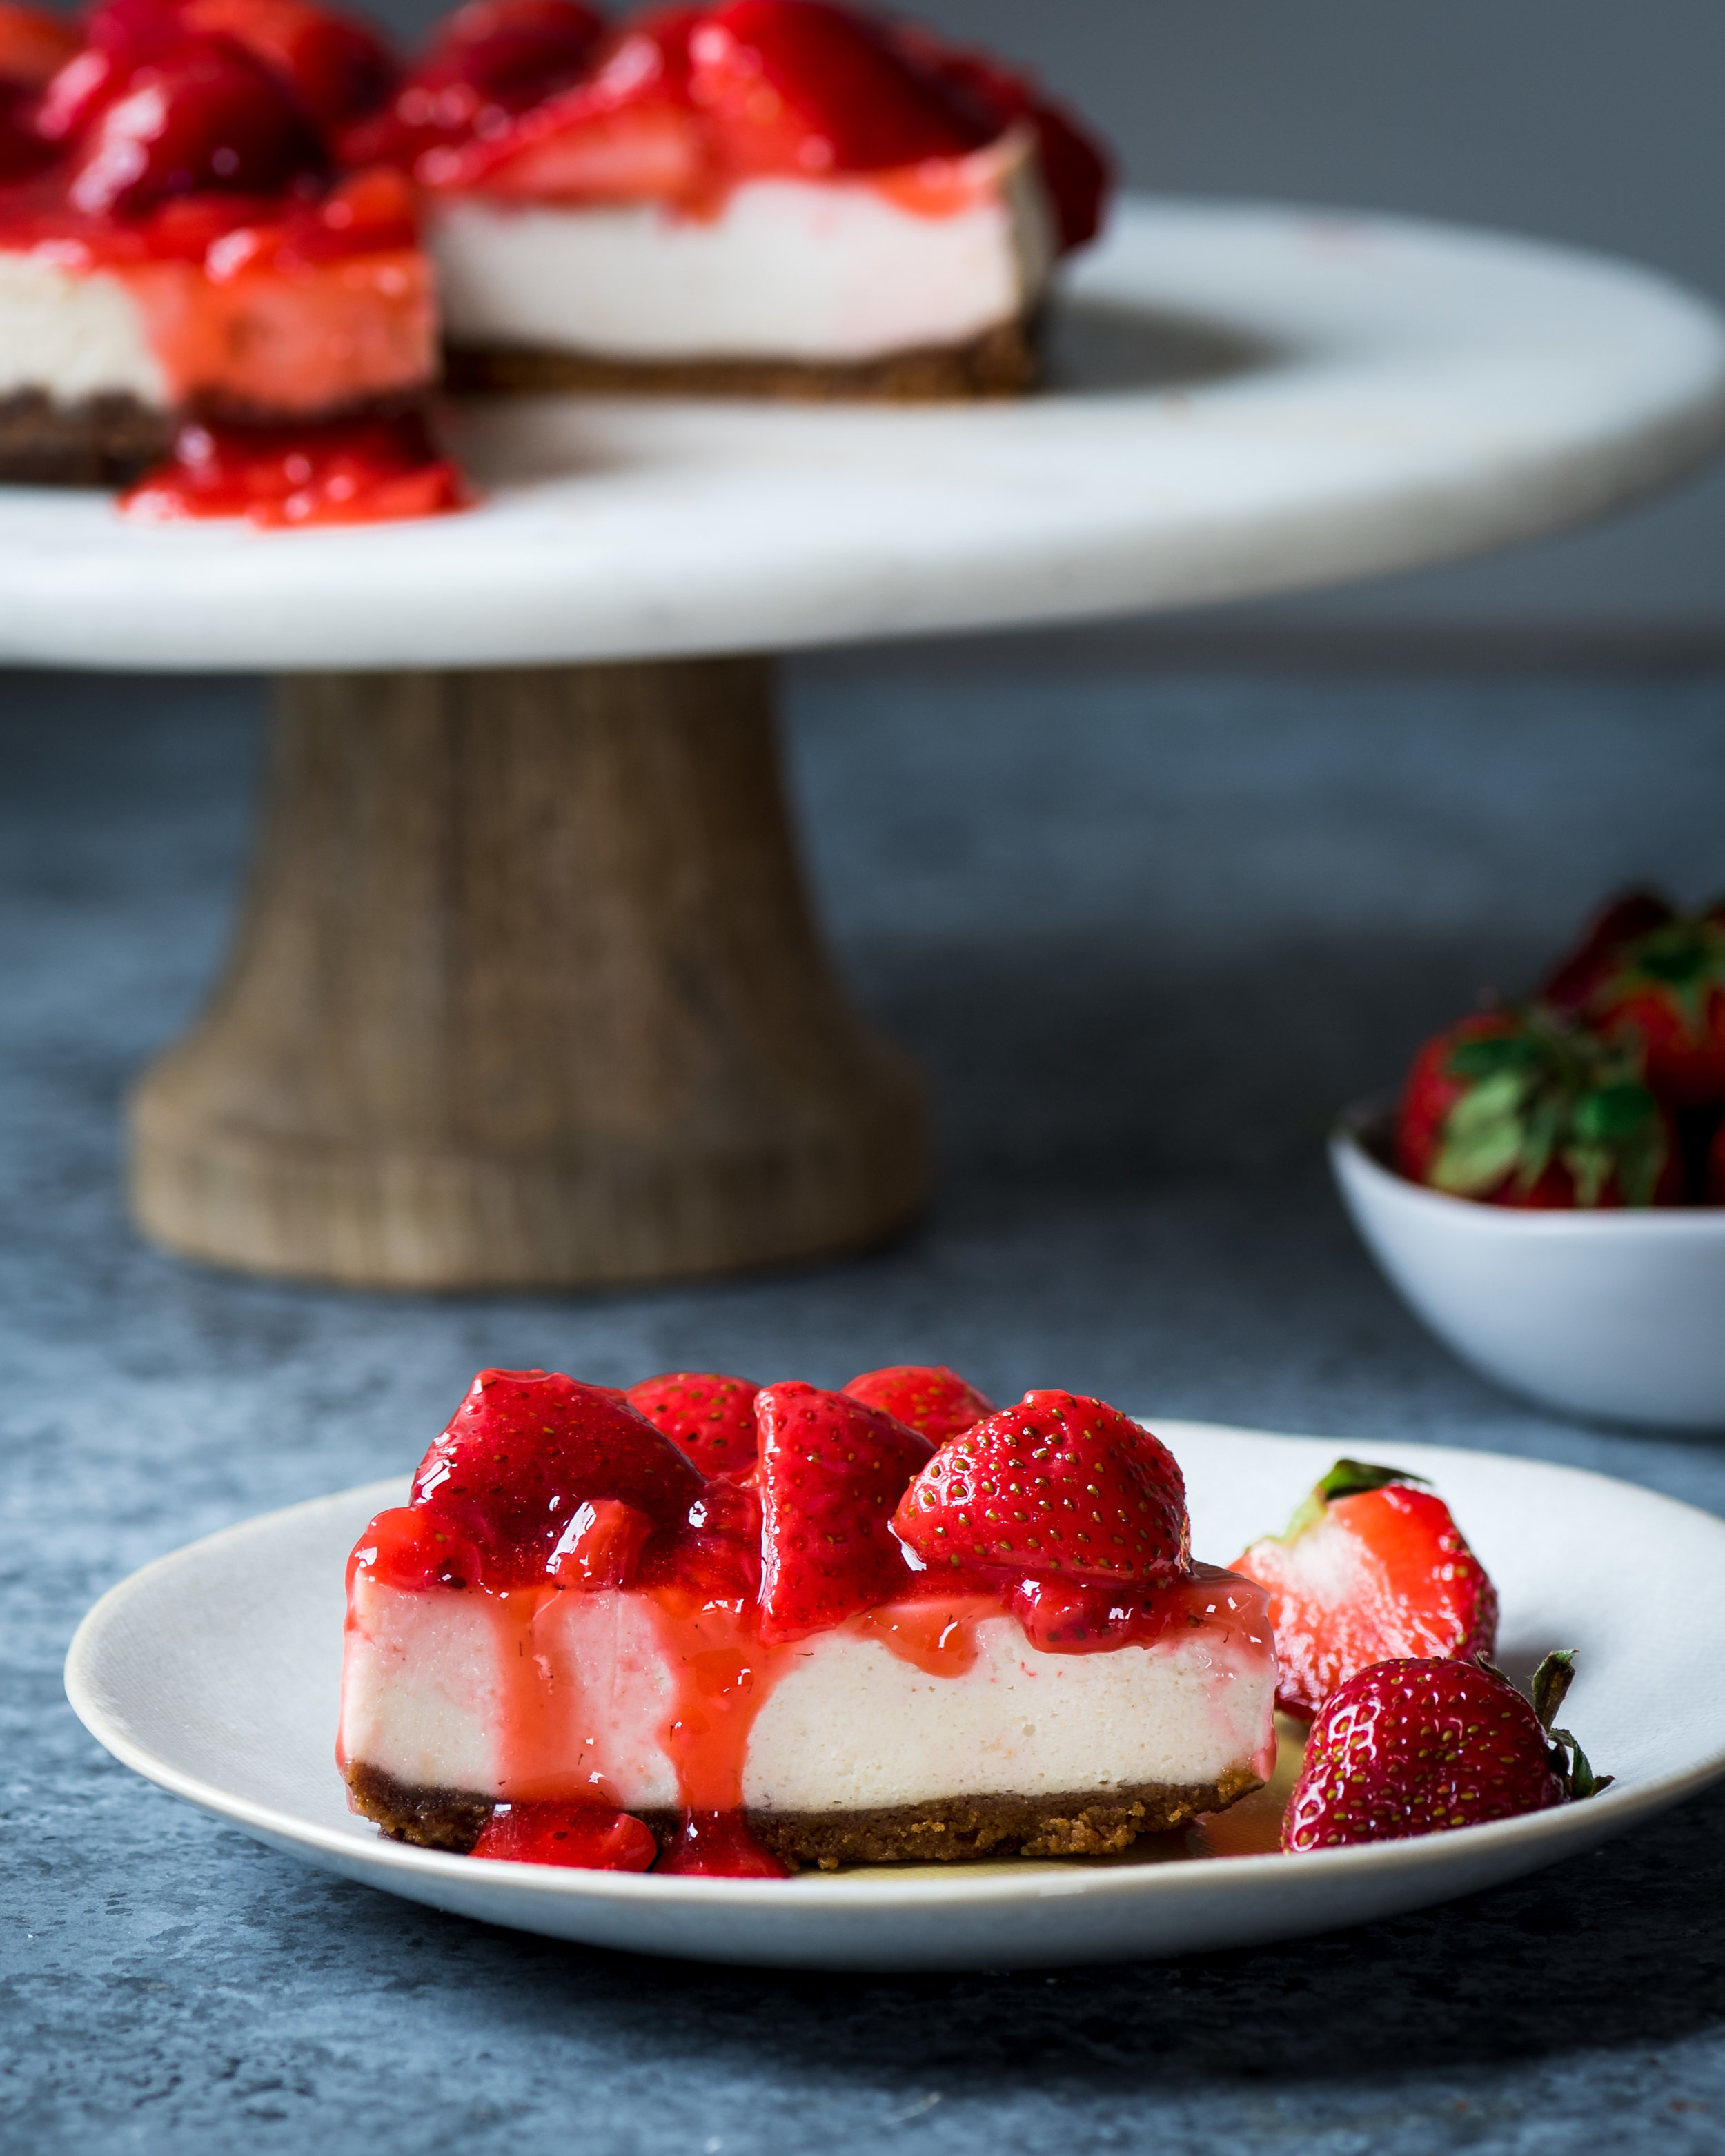 Vegan Instant Pot Cheesecake. How to Bake a Cheesecake in the Instant Pot.